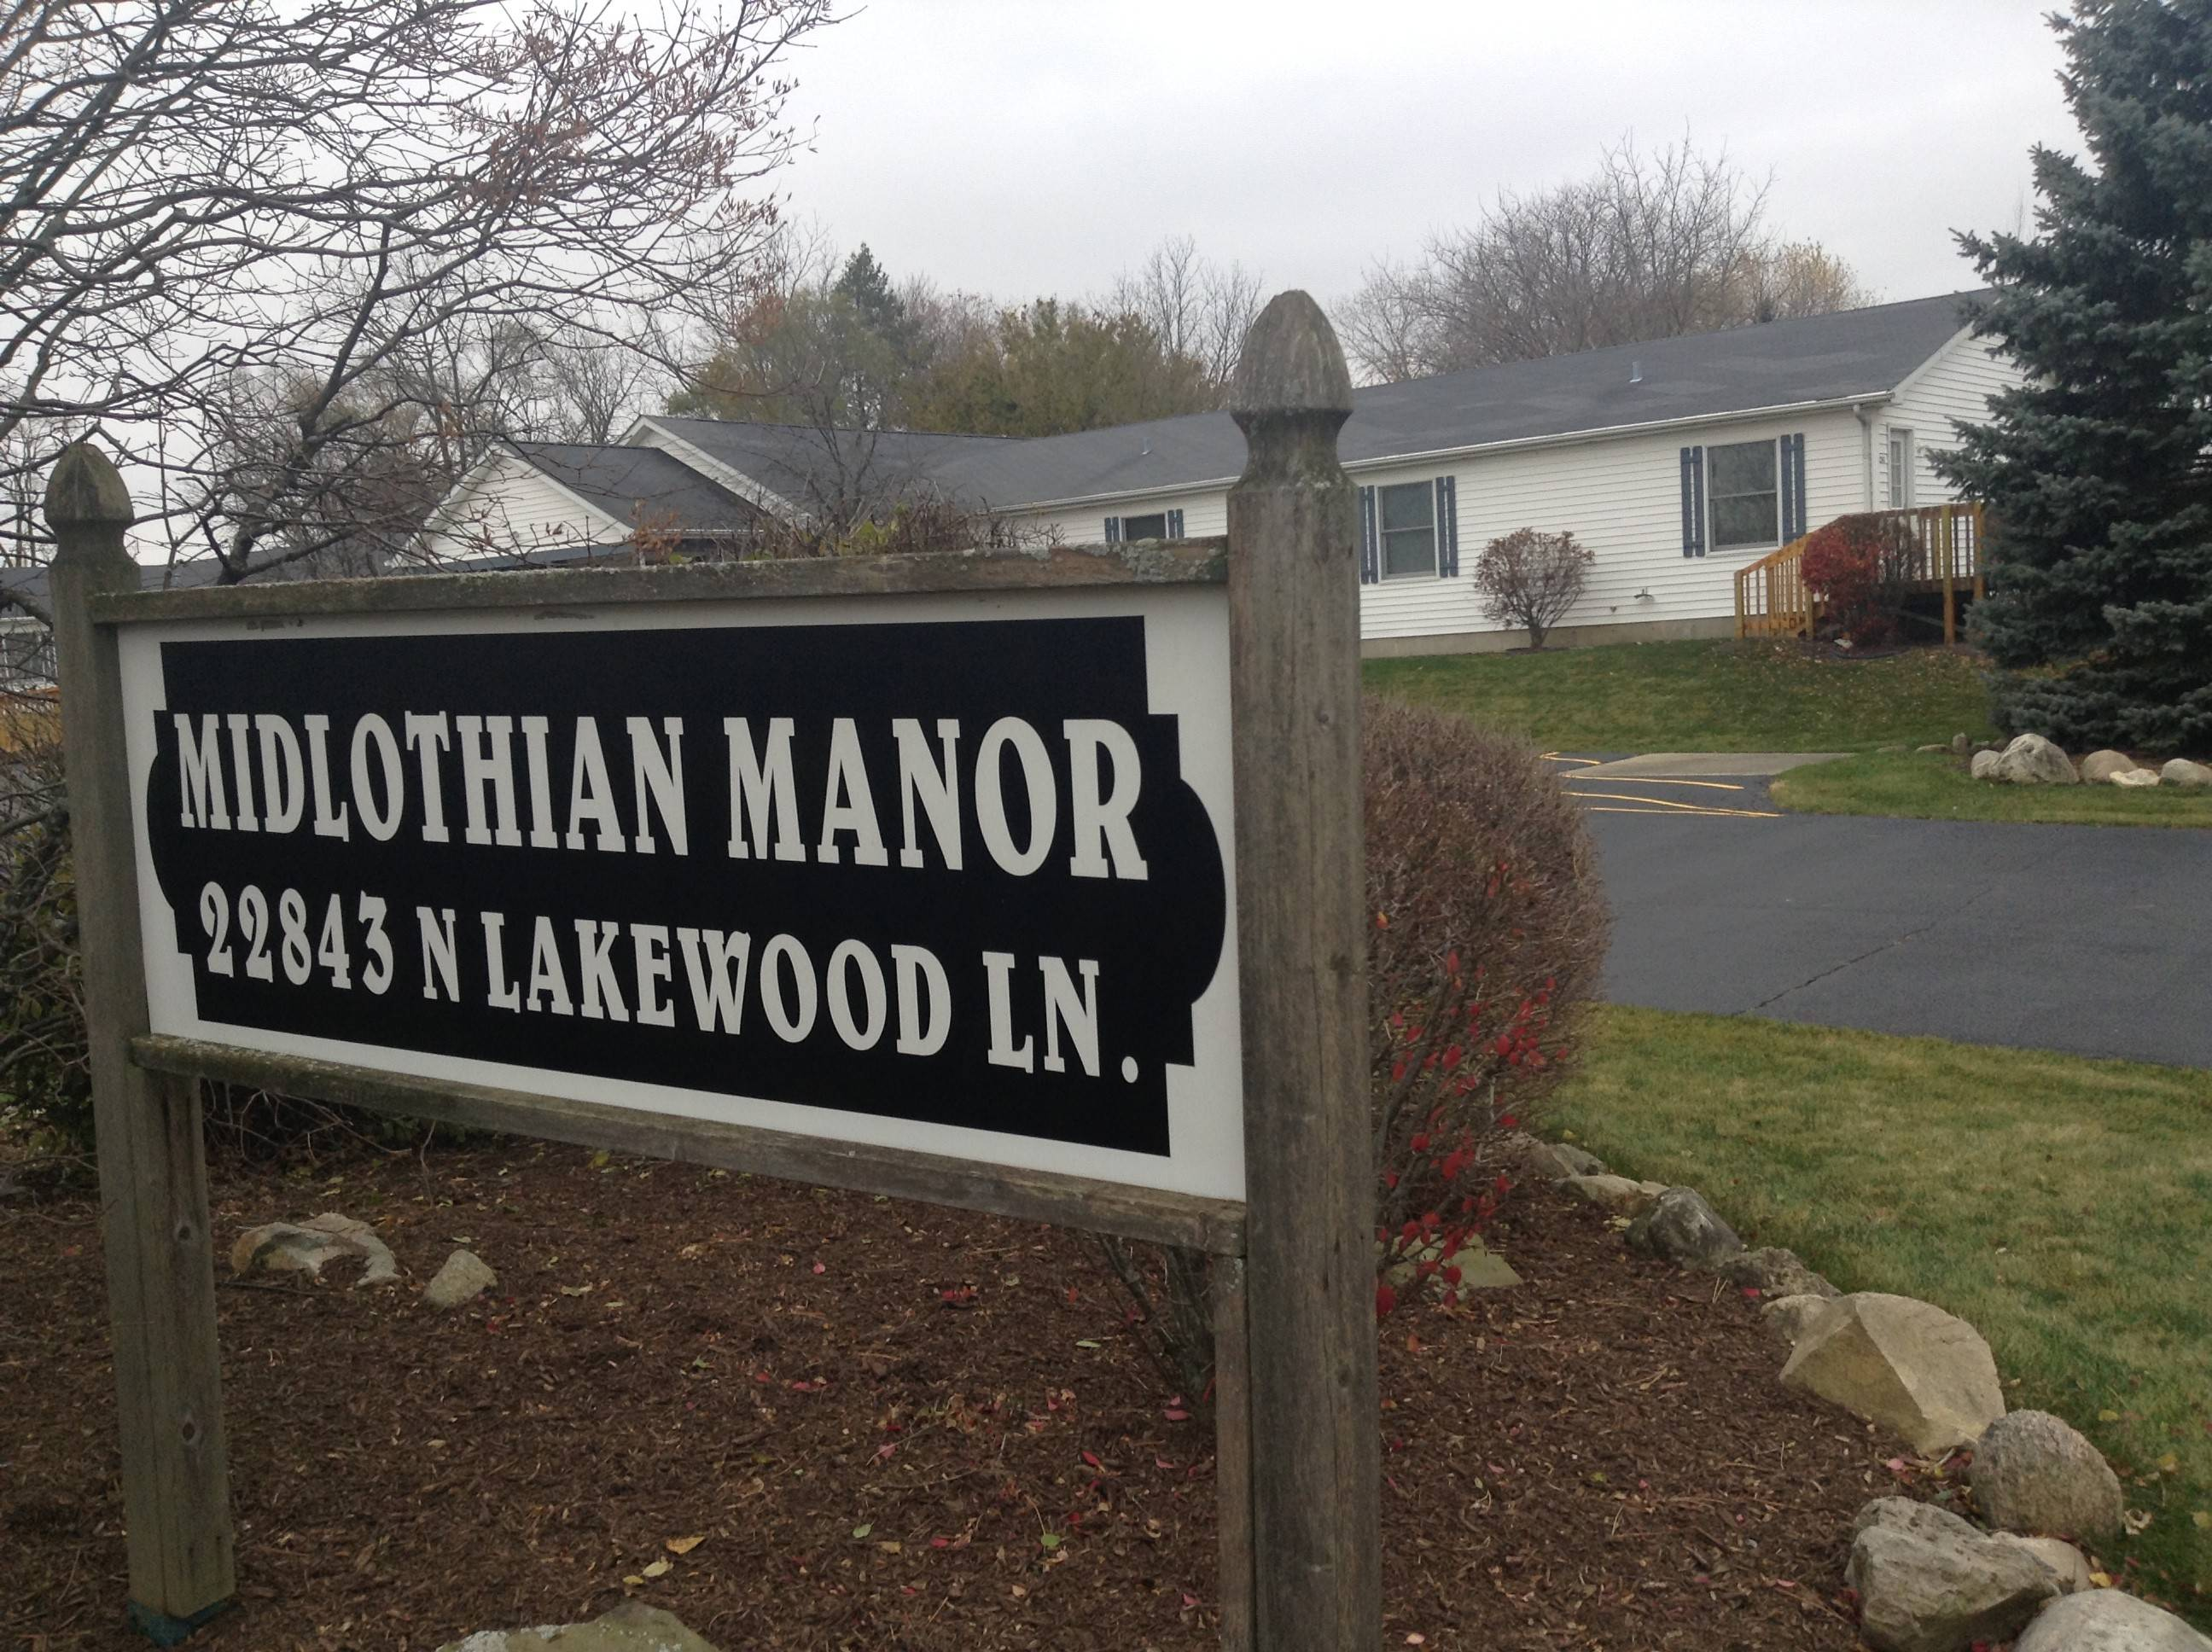 Lake County Housing Authority owns Midlothian Manor, just outside Lake Zurich, and plans to rent the 14-unit building to PADS Lake County for a program serving chronically homeless people with mental illness.